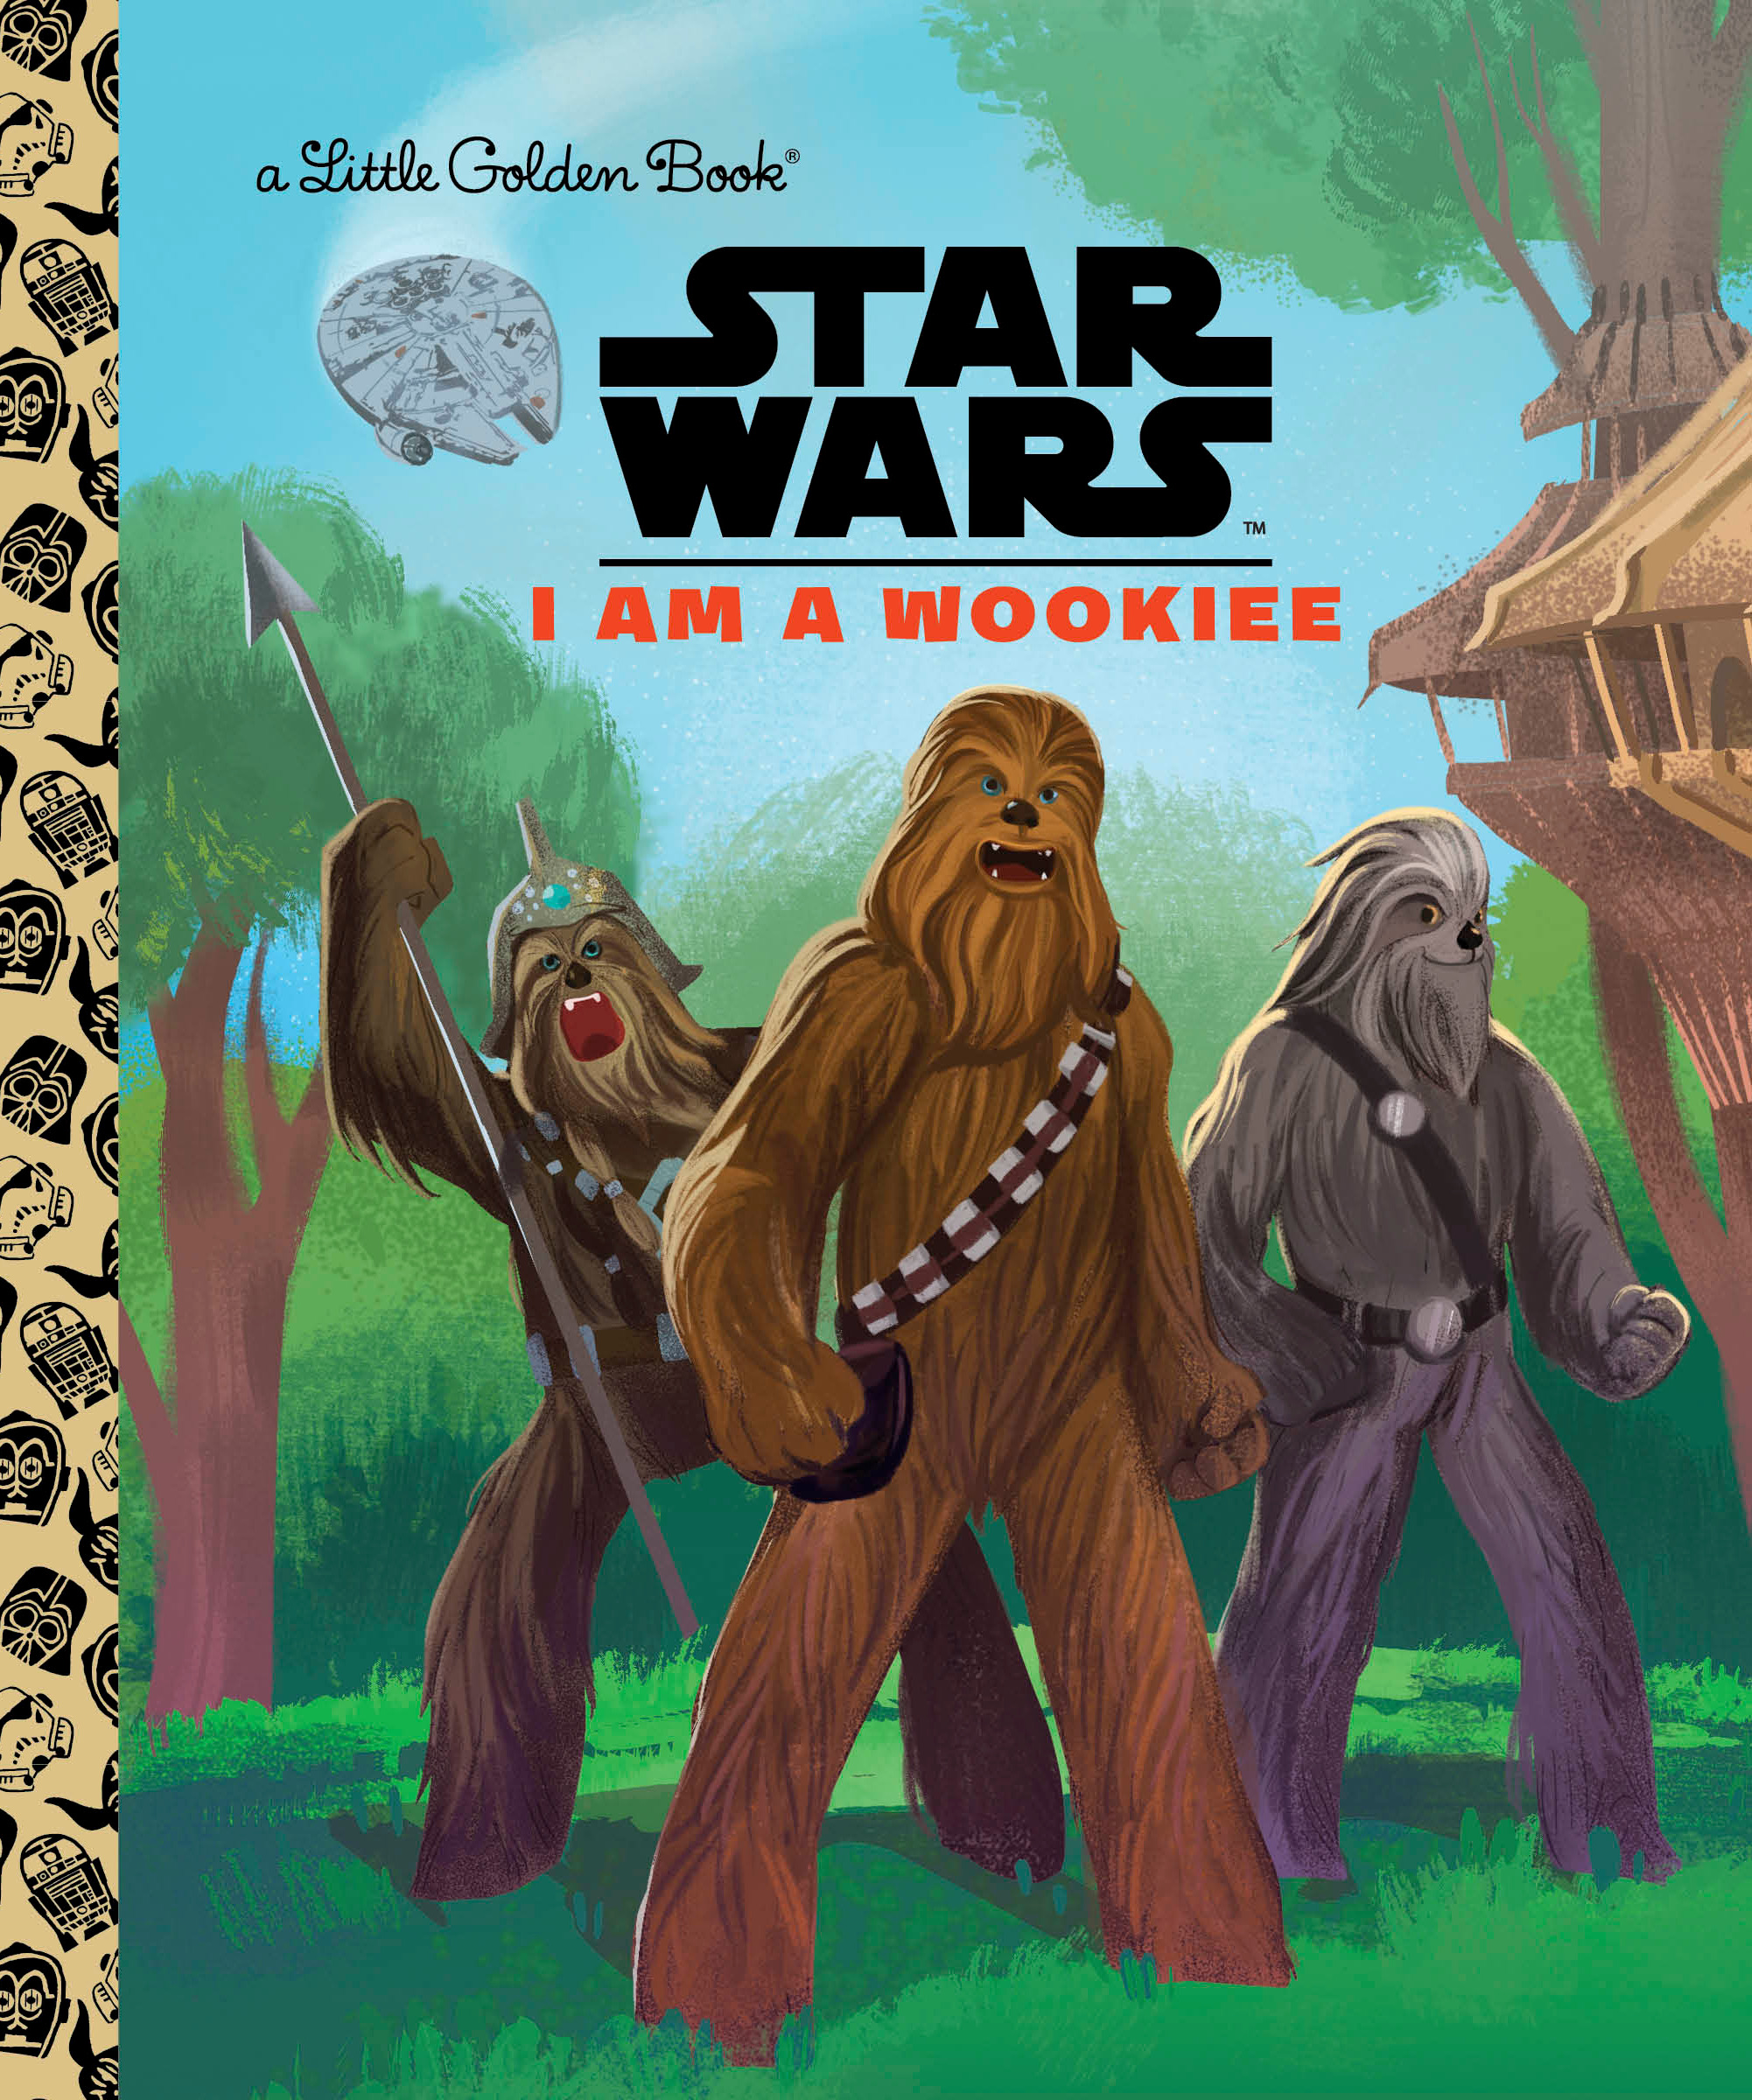 Star Wars: I am a Wookiee